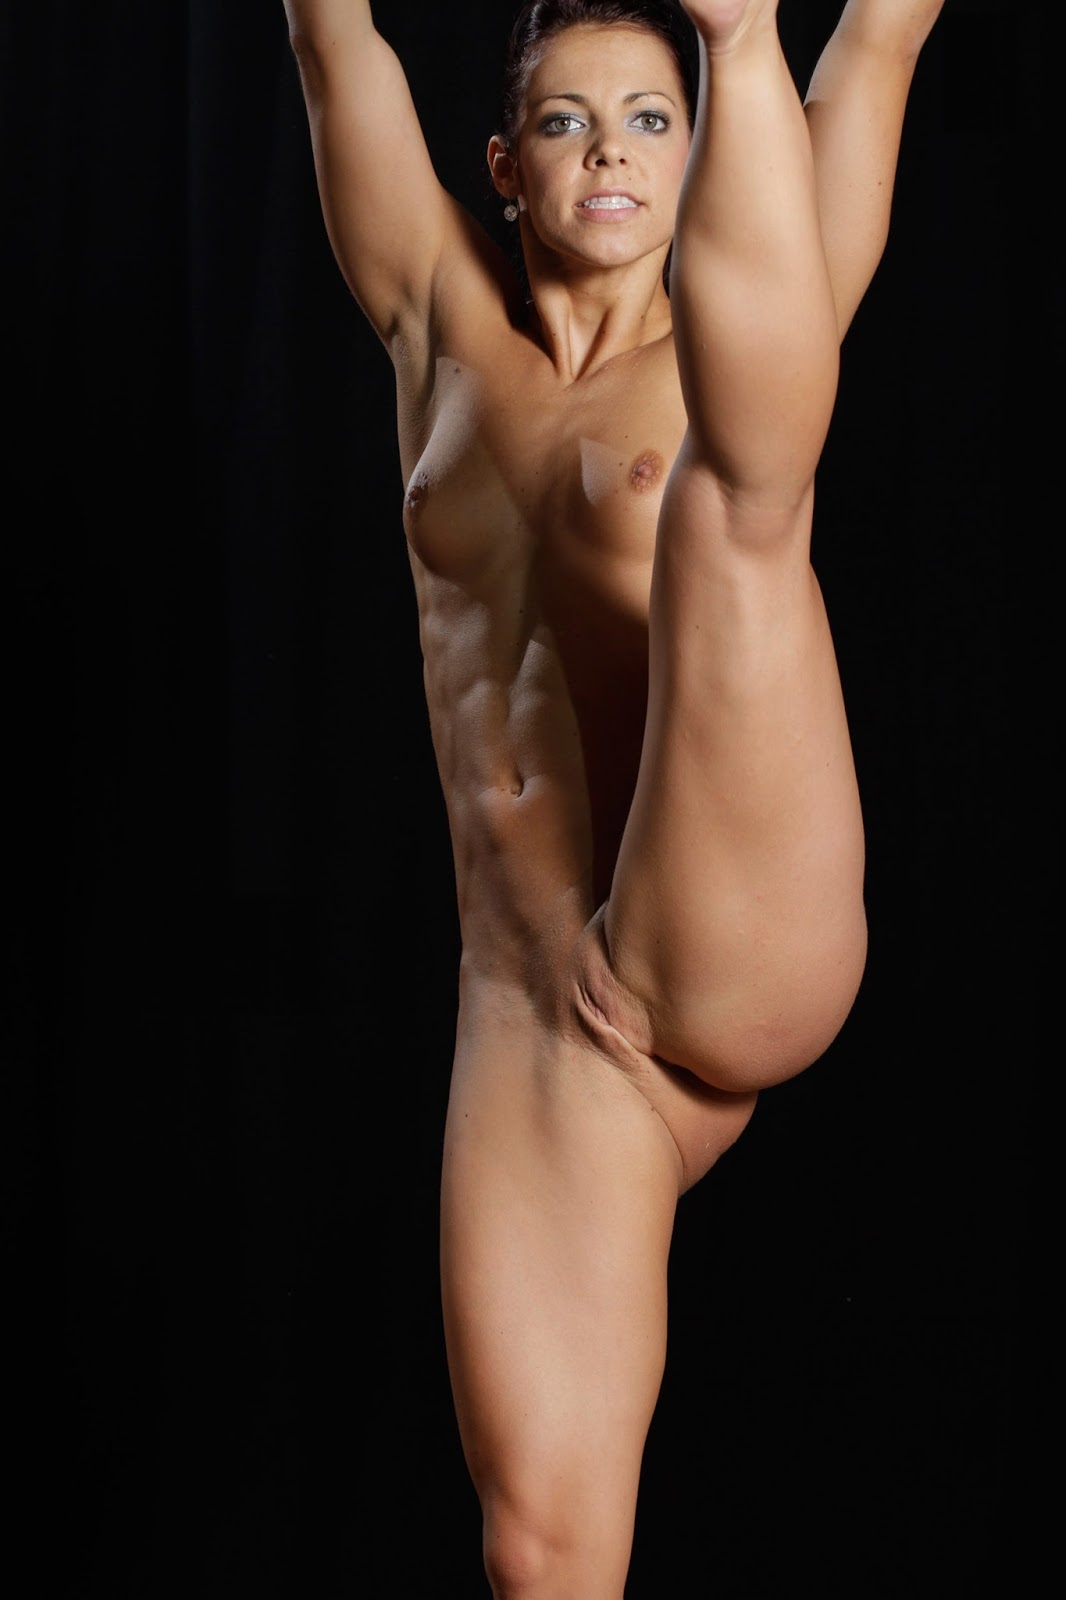 Girls Gymnastics Naked